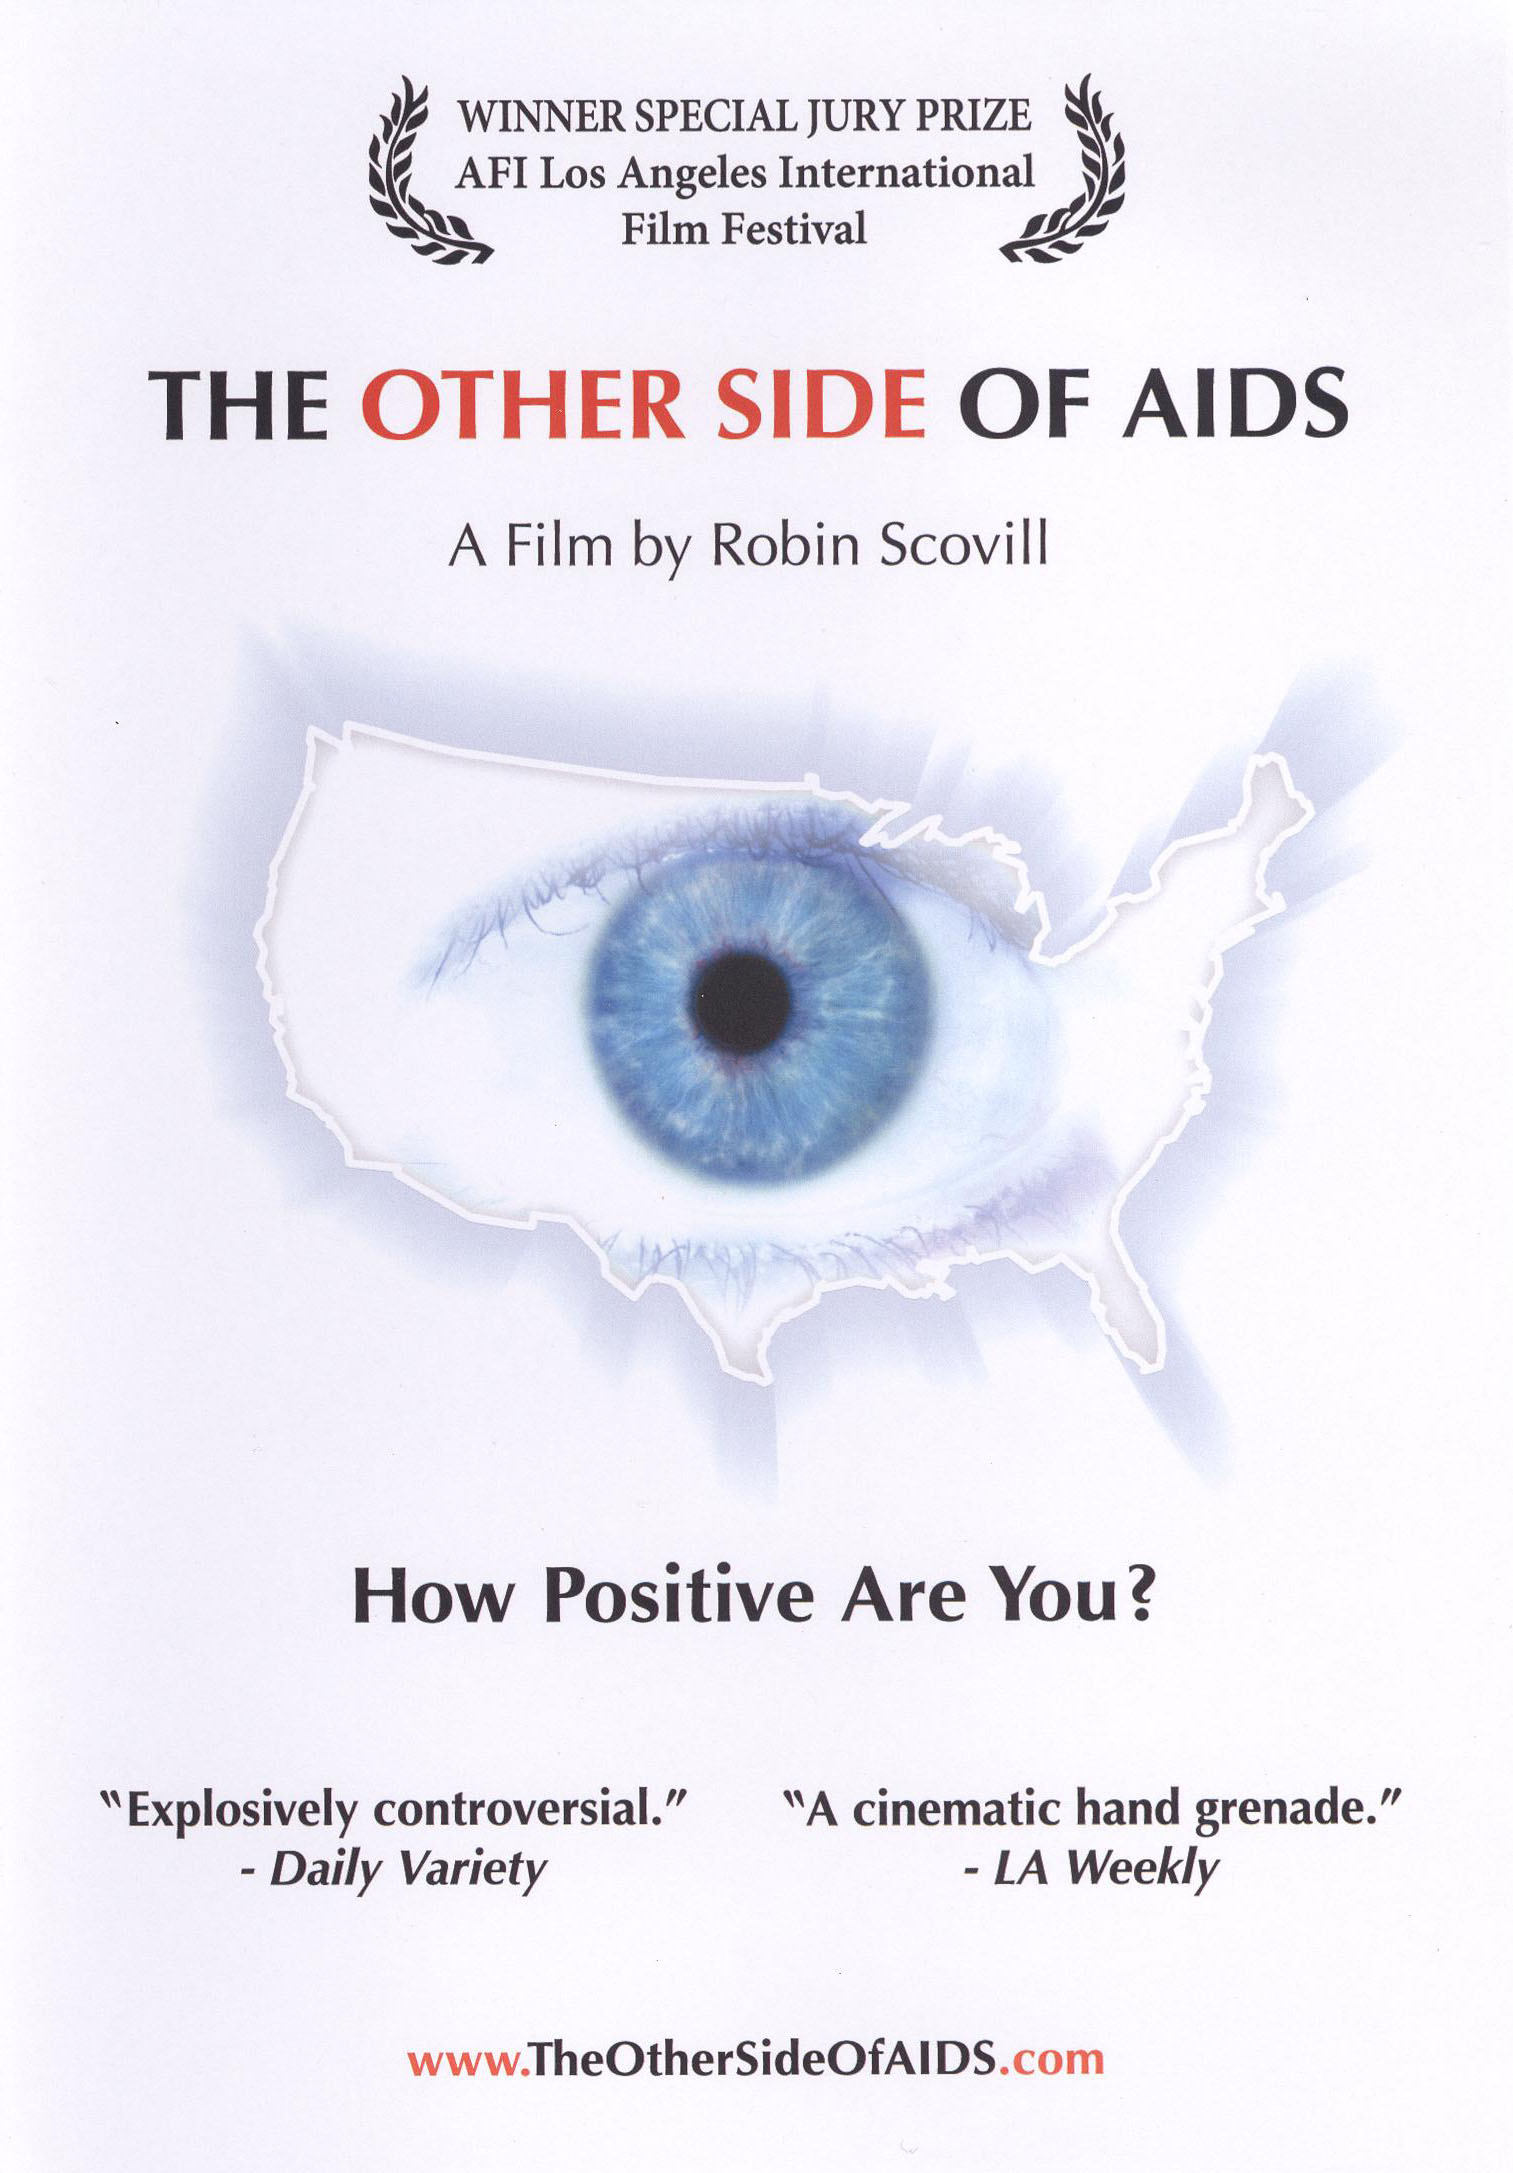 The Other Side of AIDS